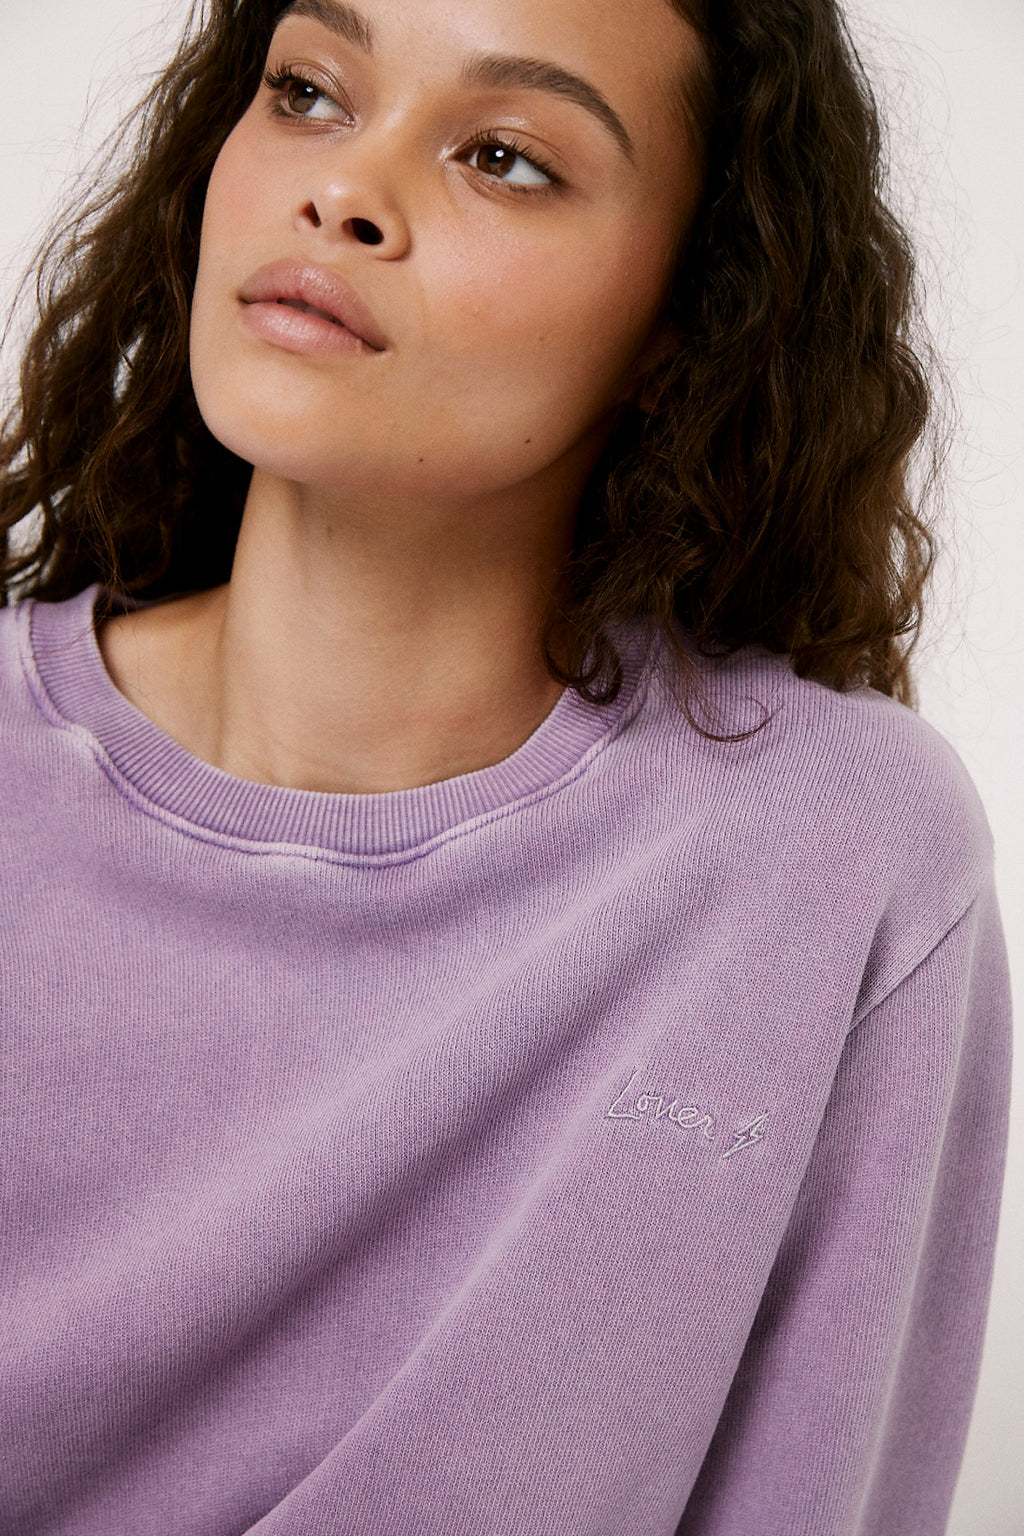 Nikki Embrodered Sweatshirt - Purple Haze